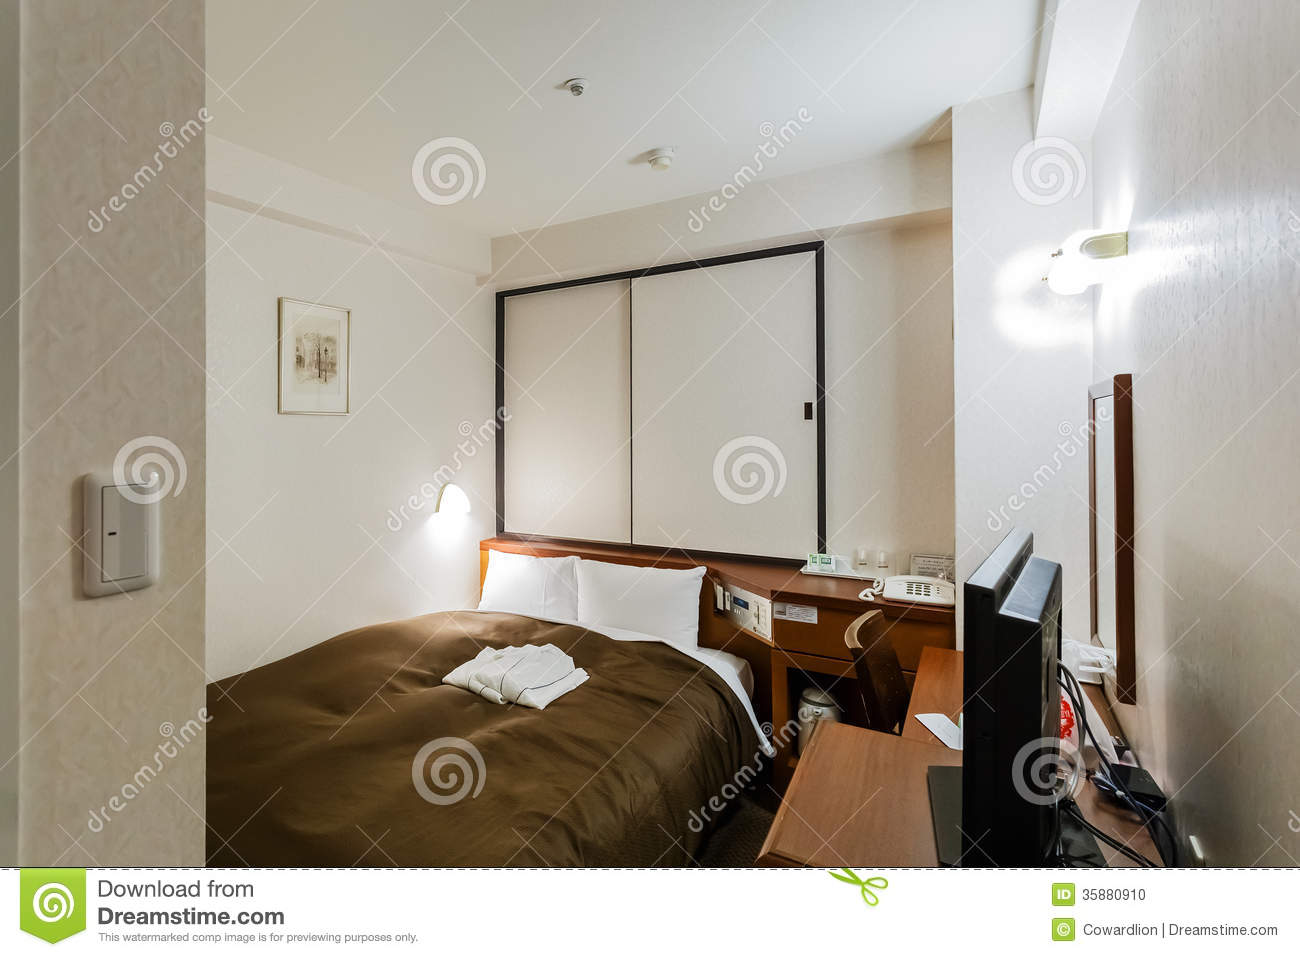 A typical small business hotel room in japan editorial for Small hotel room